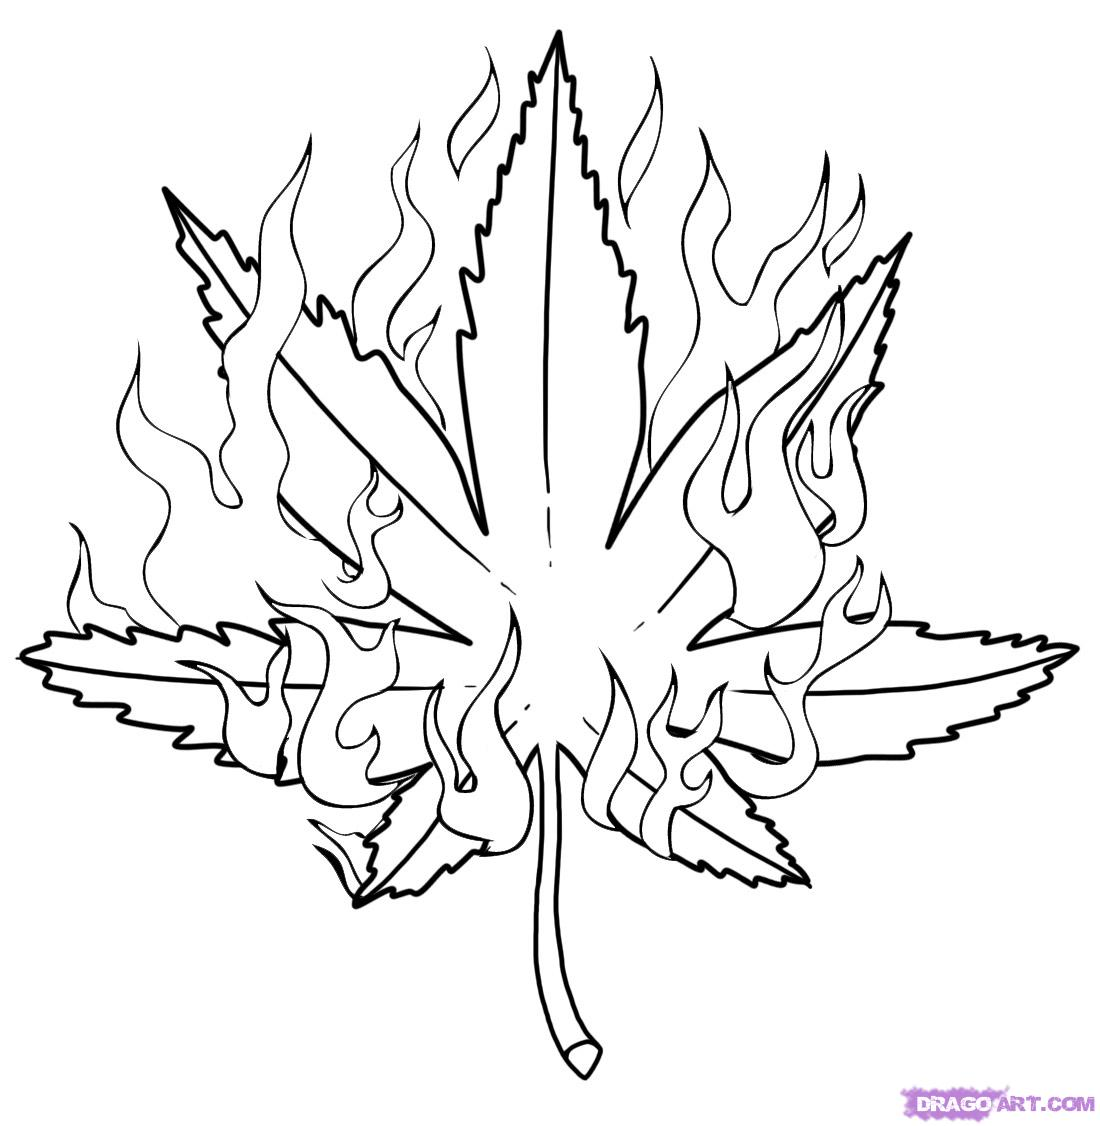 how to draw the weed leaf 31 percent happy holiday39s blow your mind how the leaf draw weed to